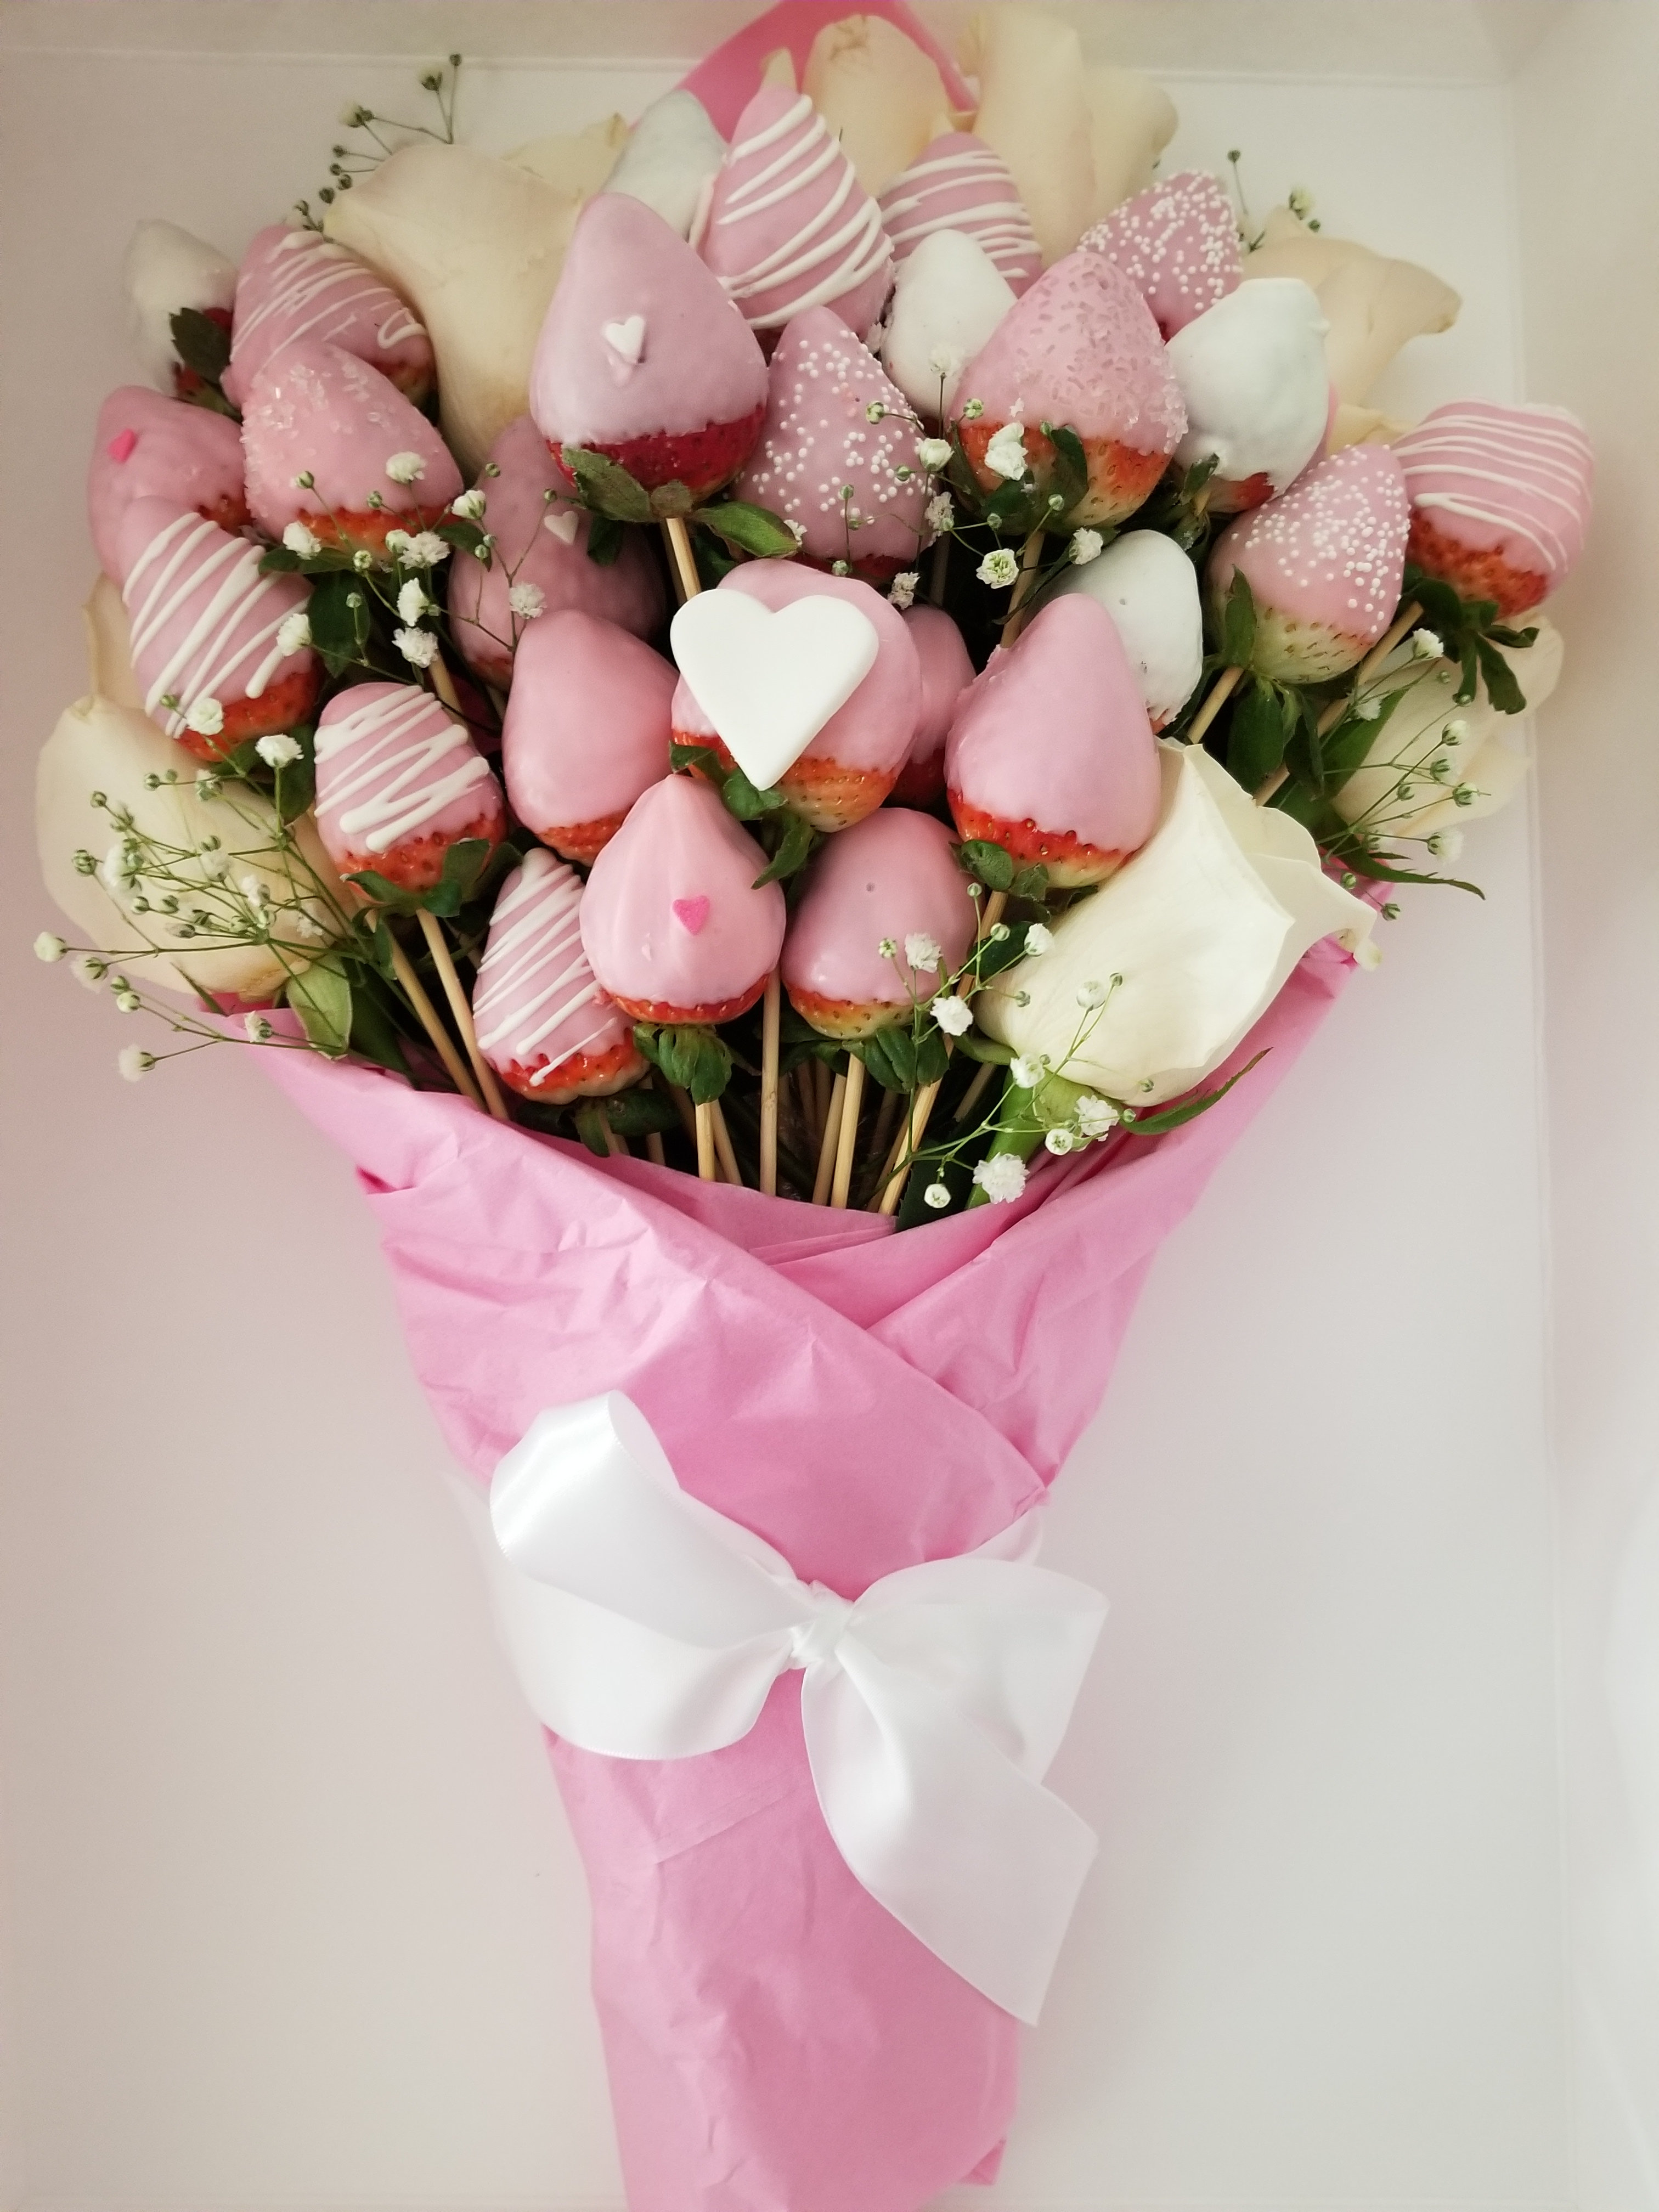 1 Dz Roses And 3 Dz Chocolate Covered Strawberries Bouquet Website